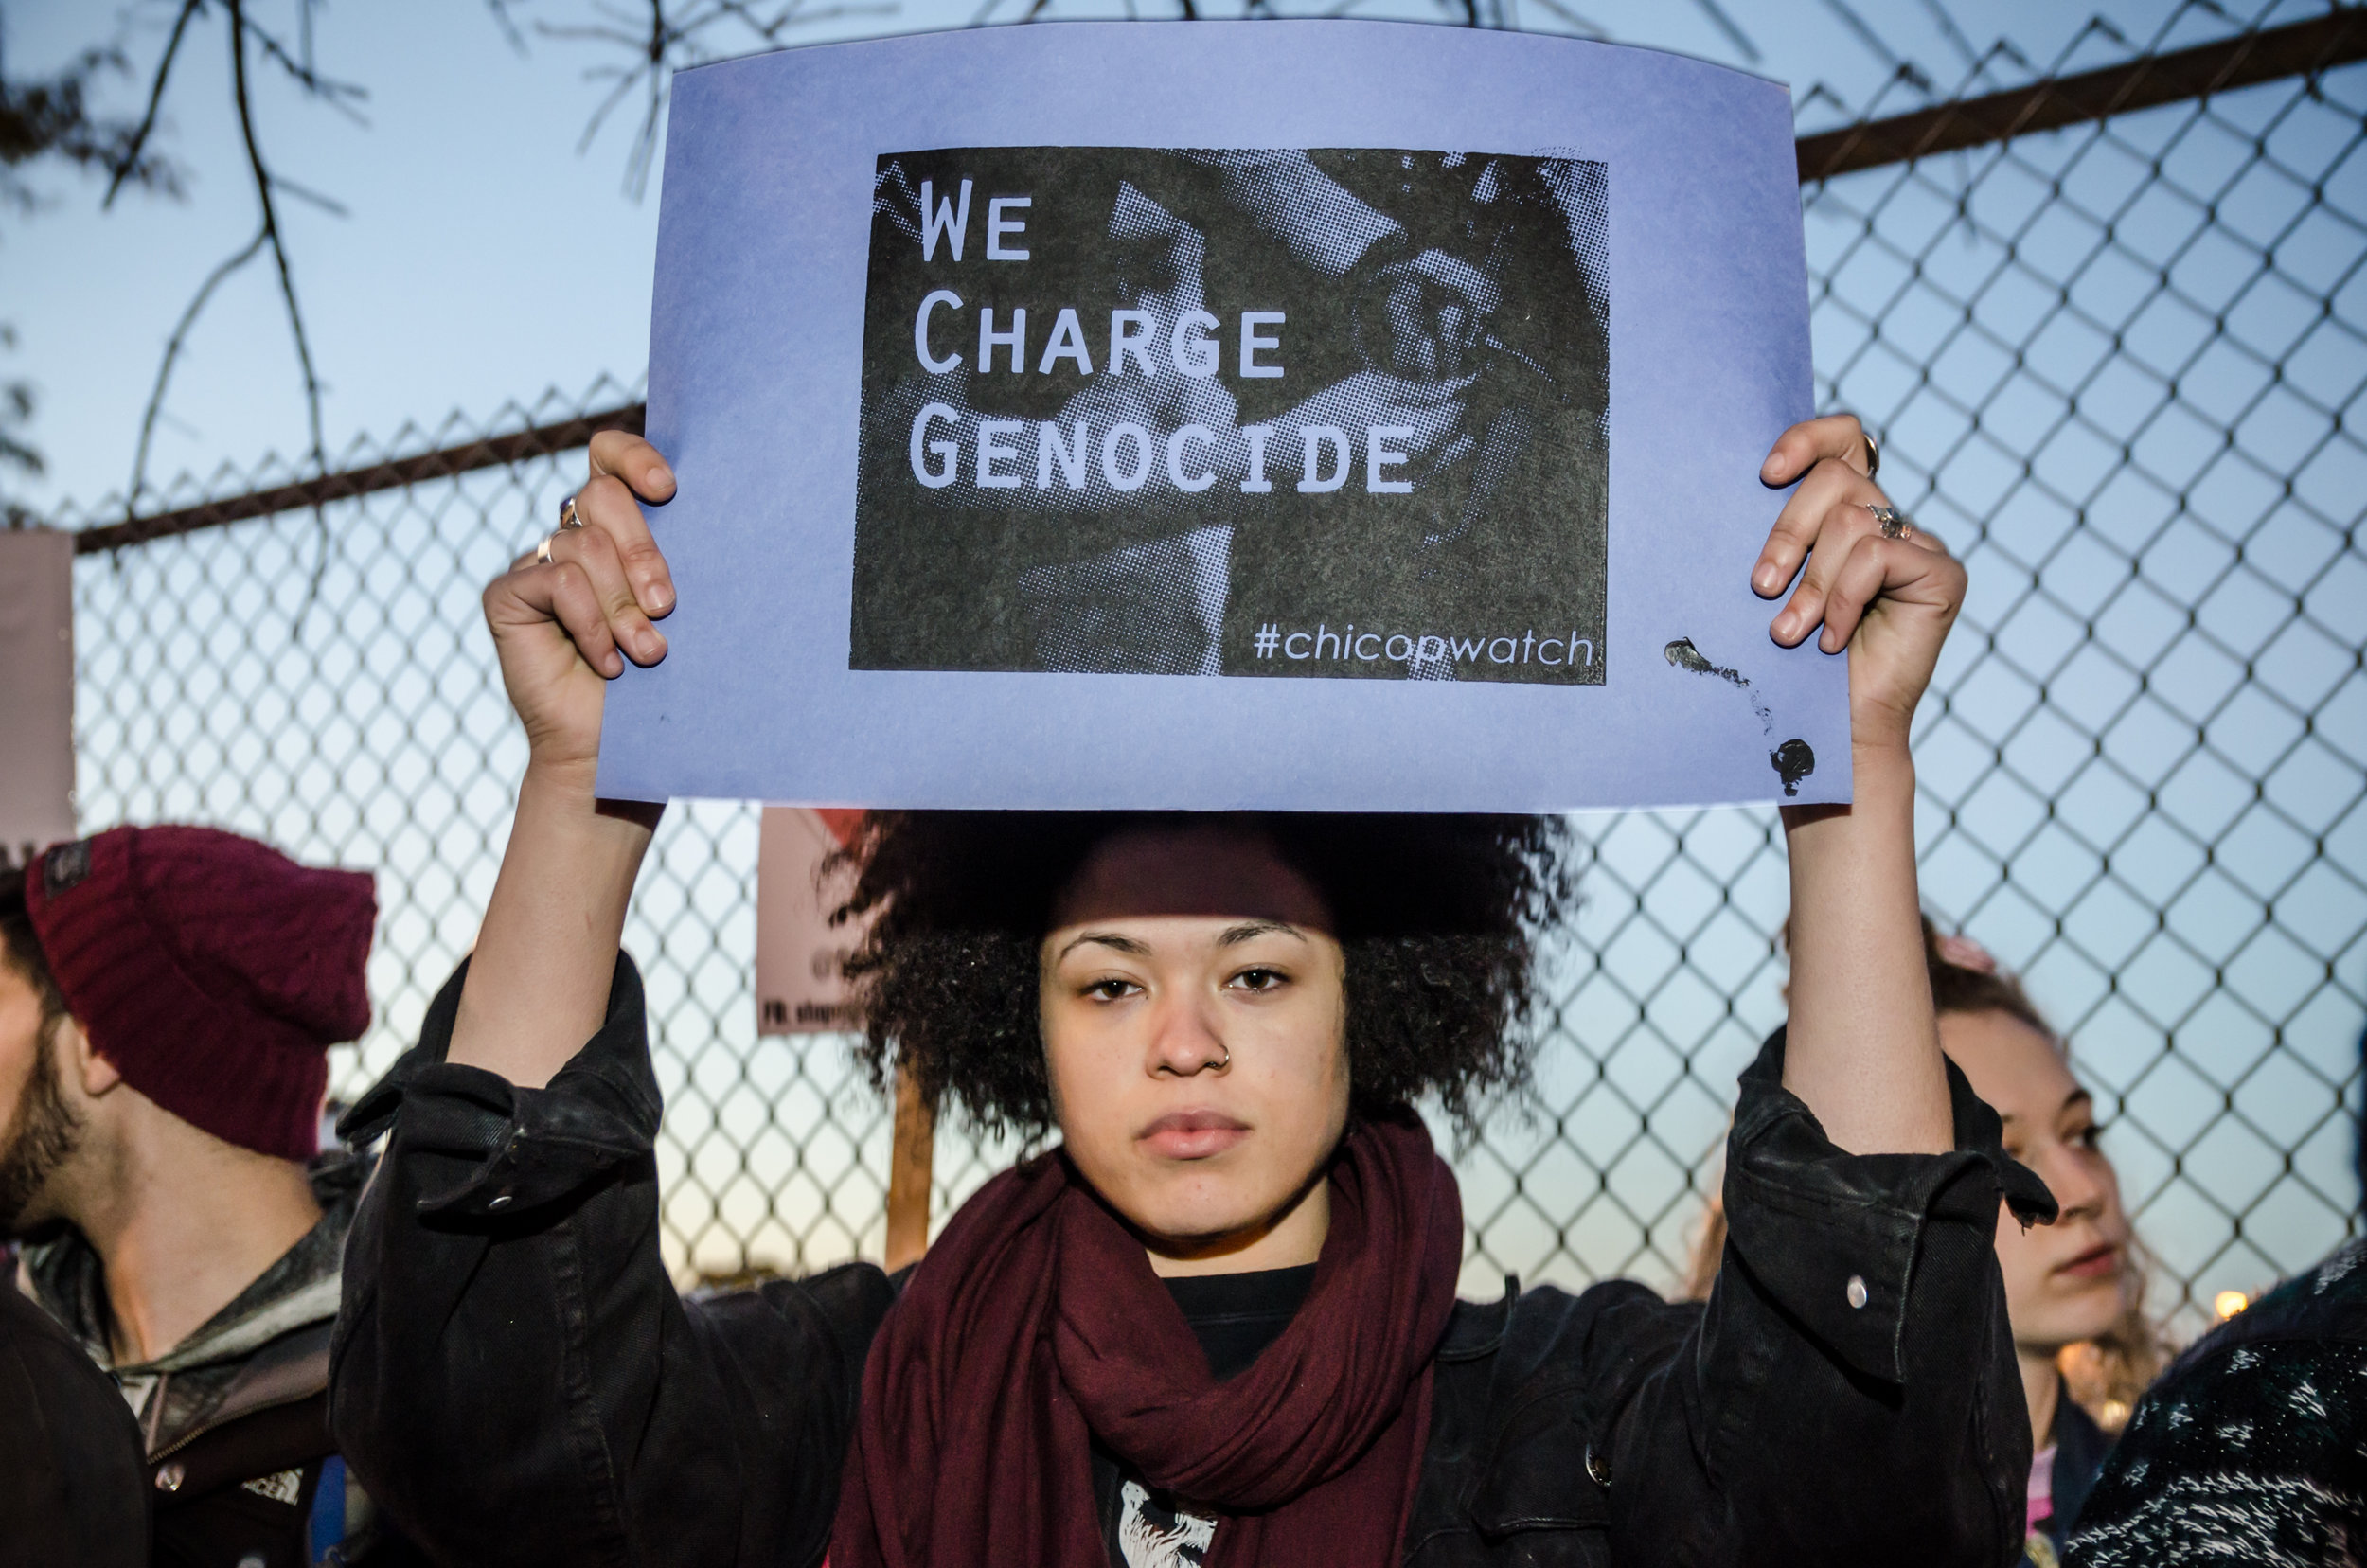 """Image: A young person of color stands in front of a chain-link fence, looking directly at the camera. They are holding up a poster with an image that has the words """"We Charge Genocide"""" superimposed in the center of the poster. The hashtag #chicopwatch is placed on the lower right corner of the poster. Photo taken October 22, 2014, at the Break Down the Wall of Silence Protest Against Police Brutality, organized by We Charge Genocide. Photo courtesy of the artist."""